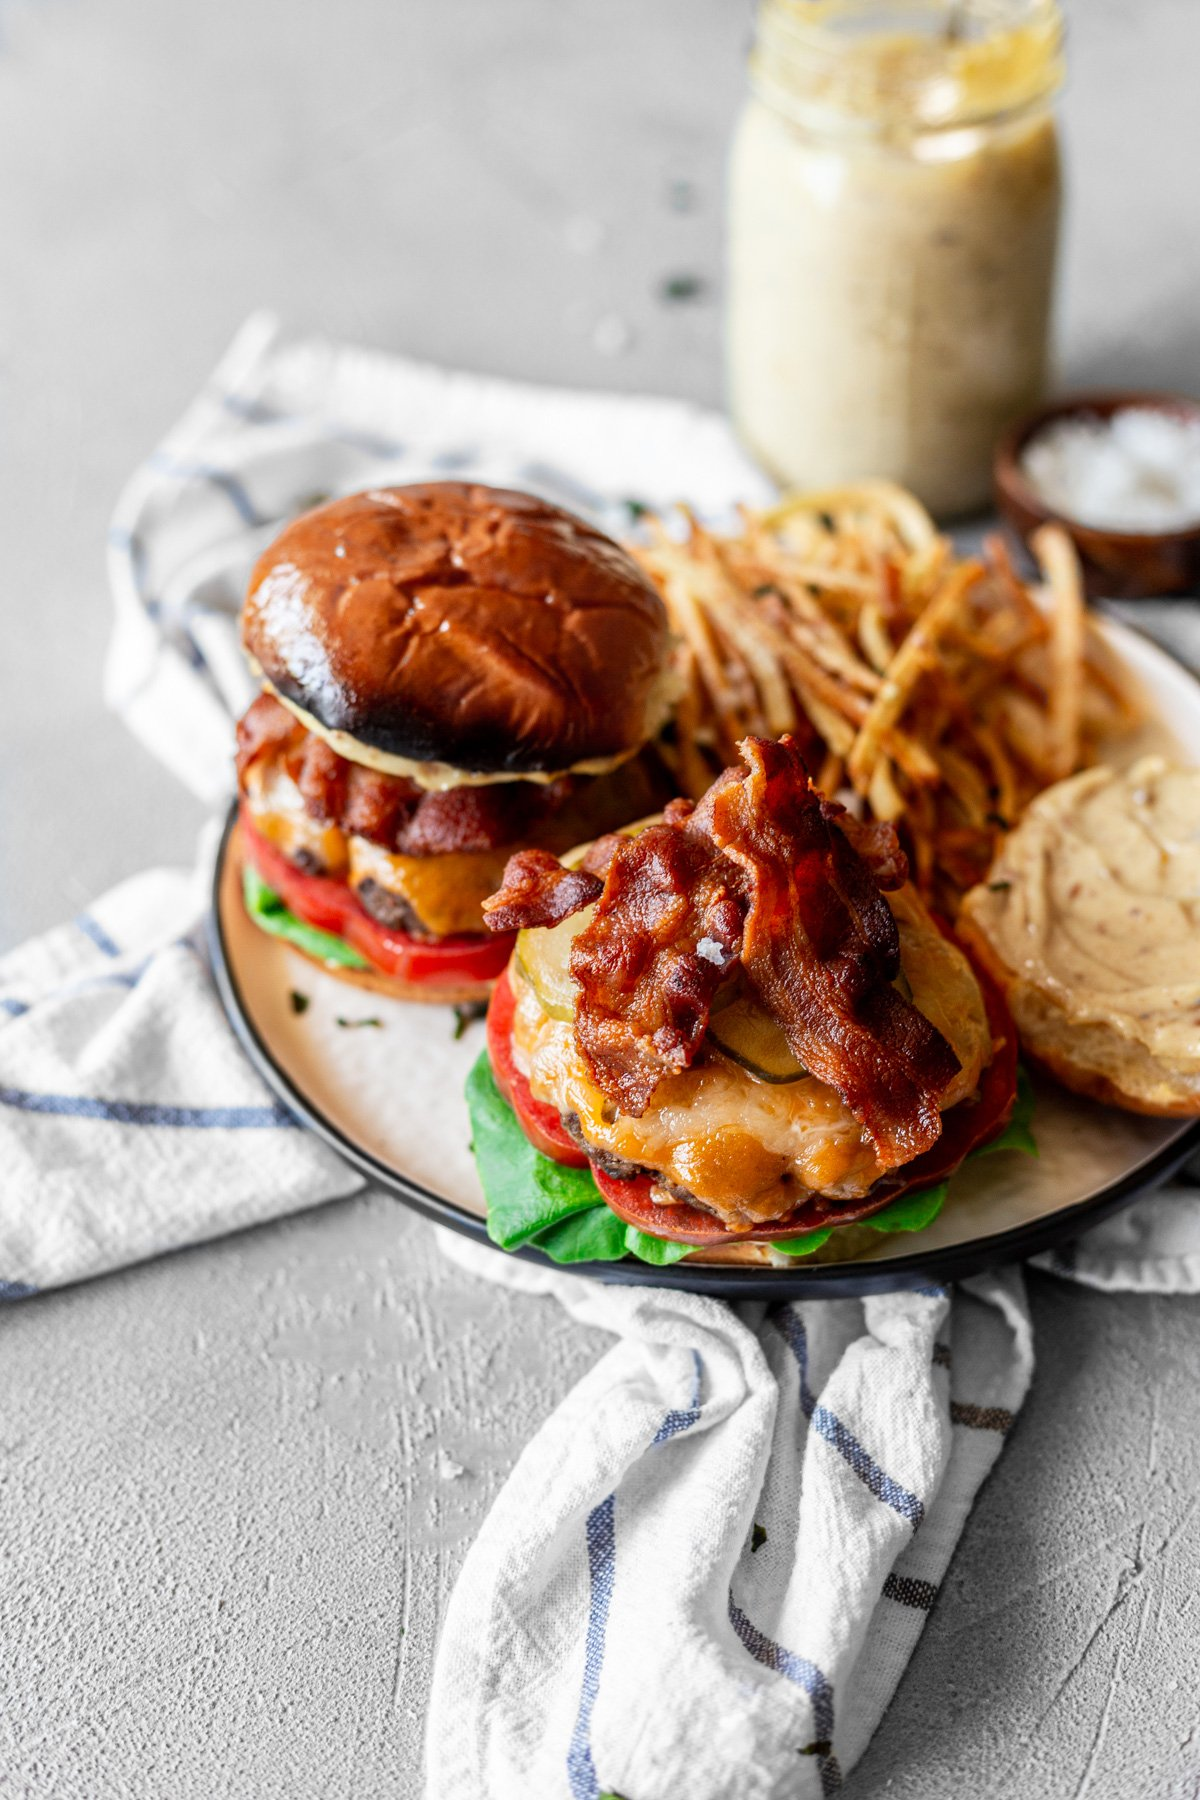 Bacon smash burgers with cheese, bacon, bacon aioli, lettuce and tomato, with thin-cut fries